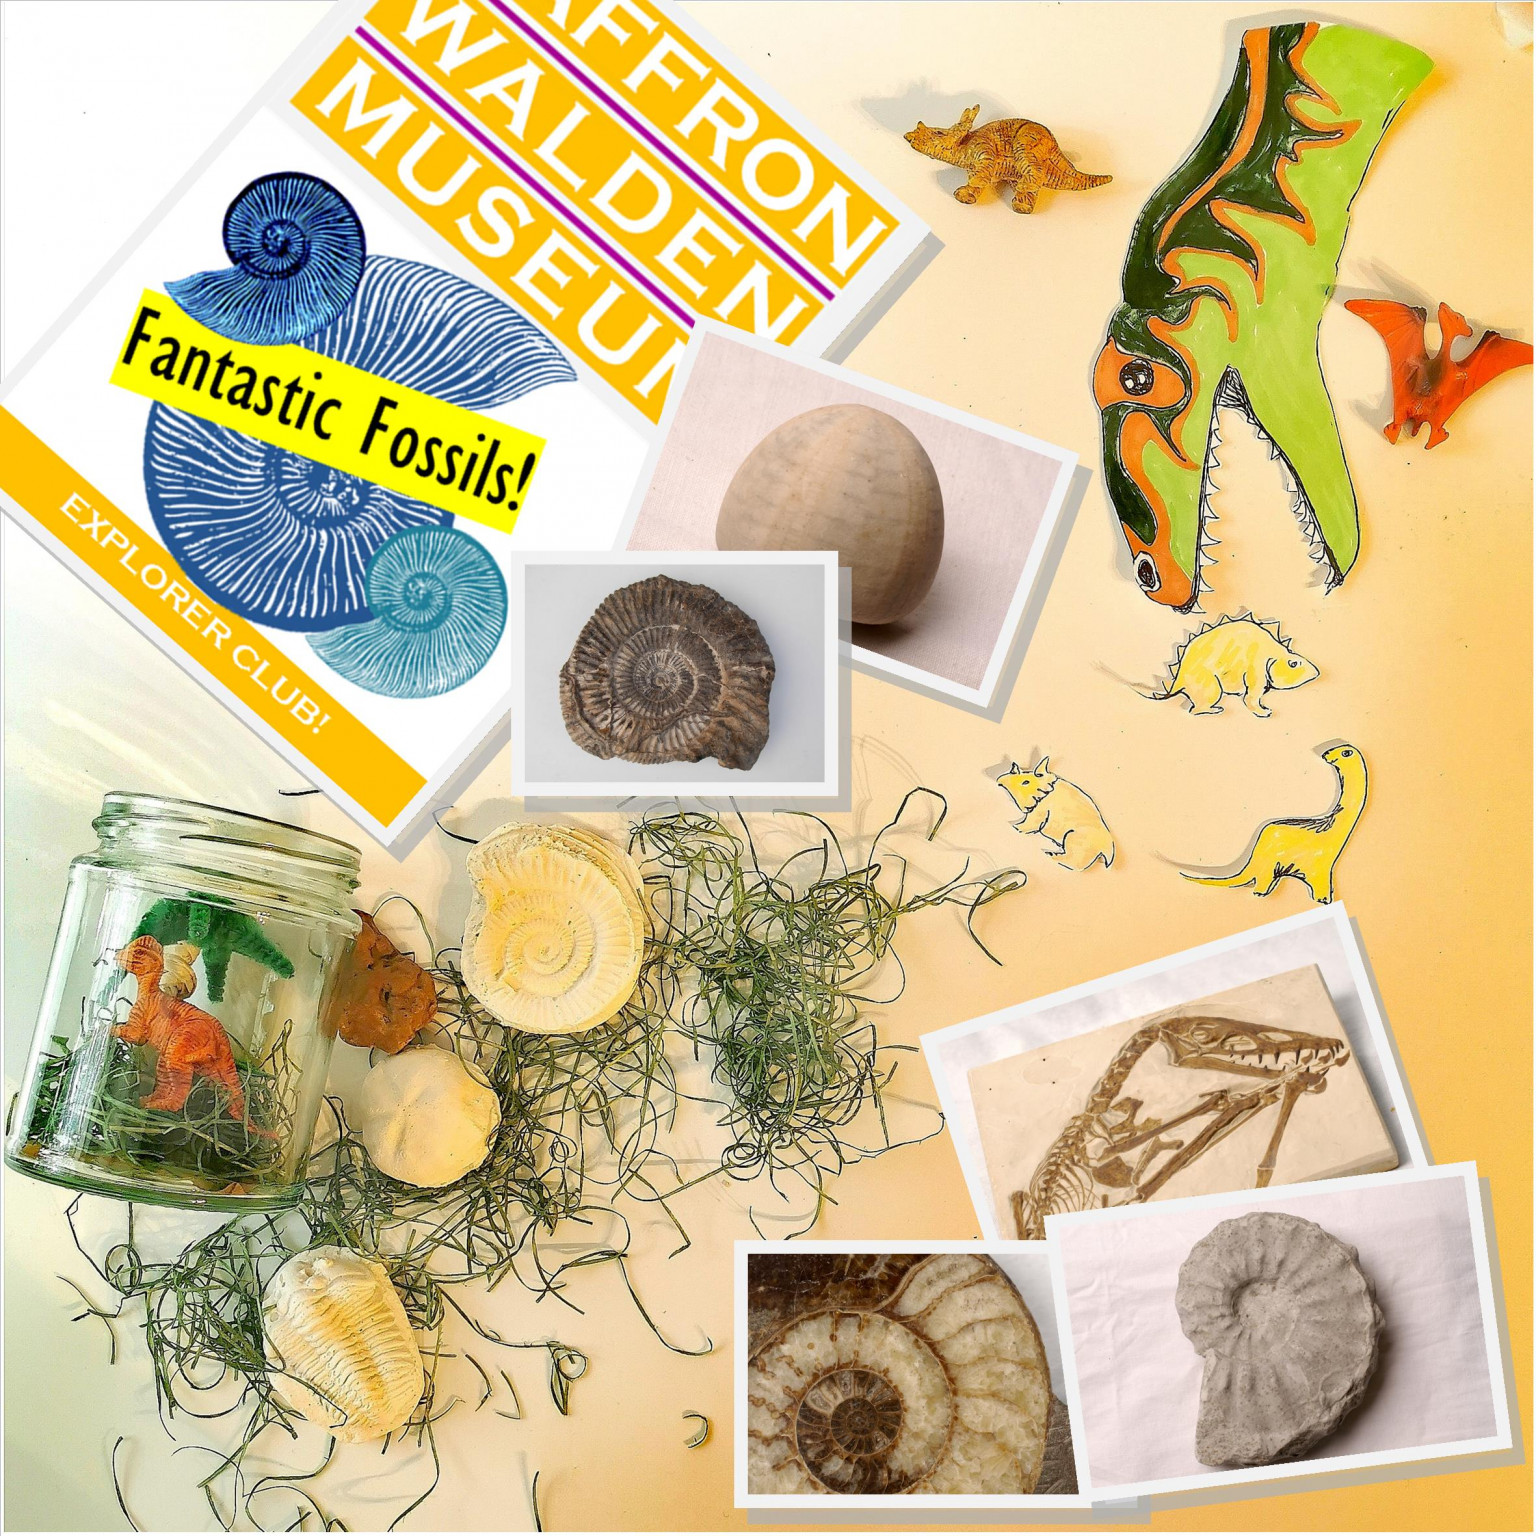 Fantastic Fossils click and collect activity pack